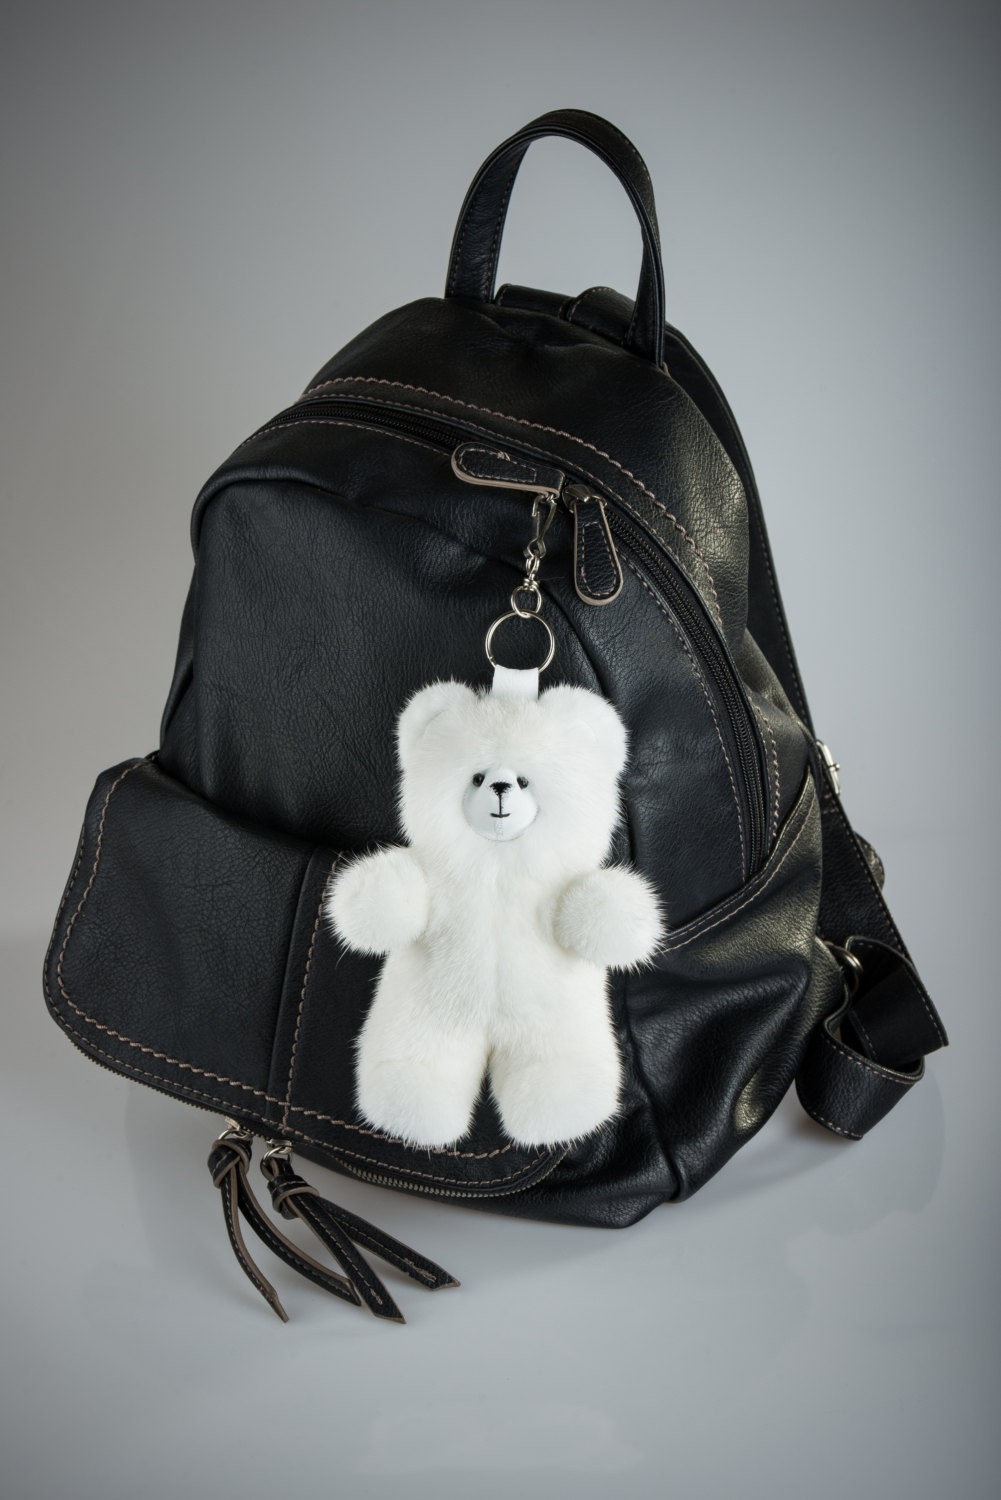 Buy White Bear Fur Keychain